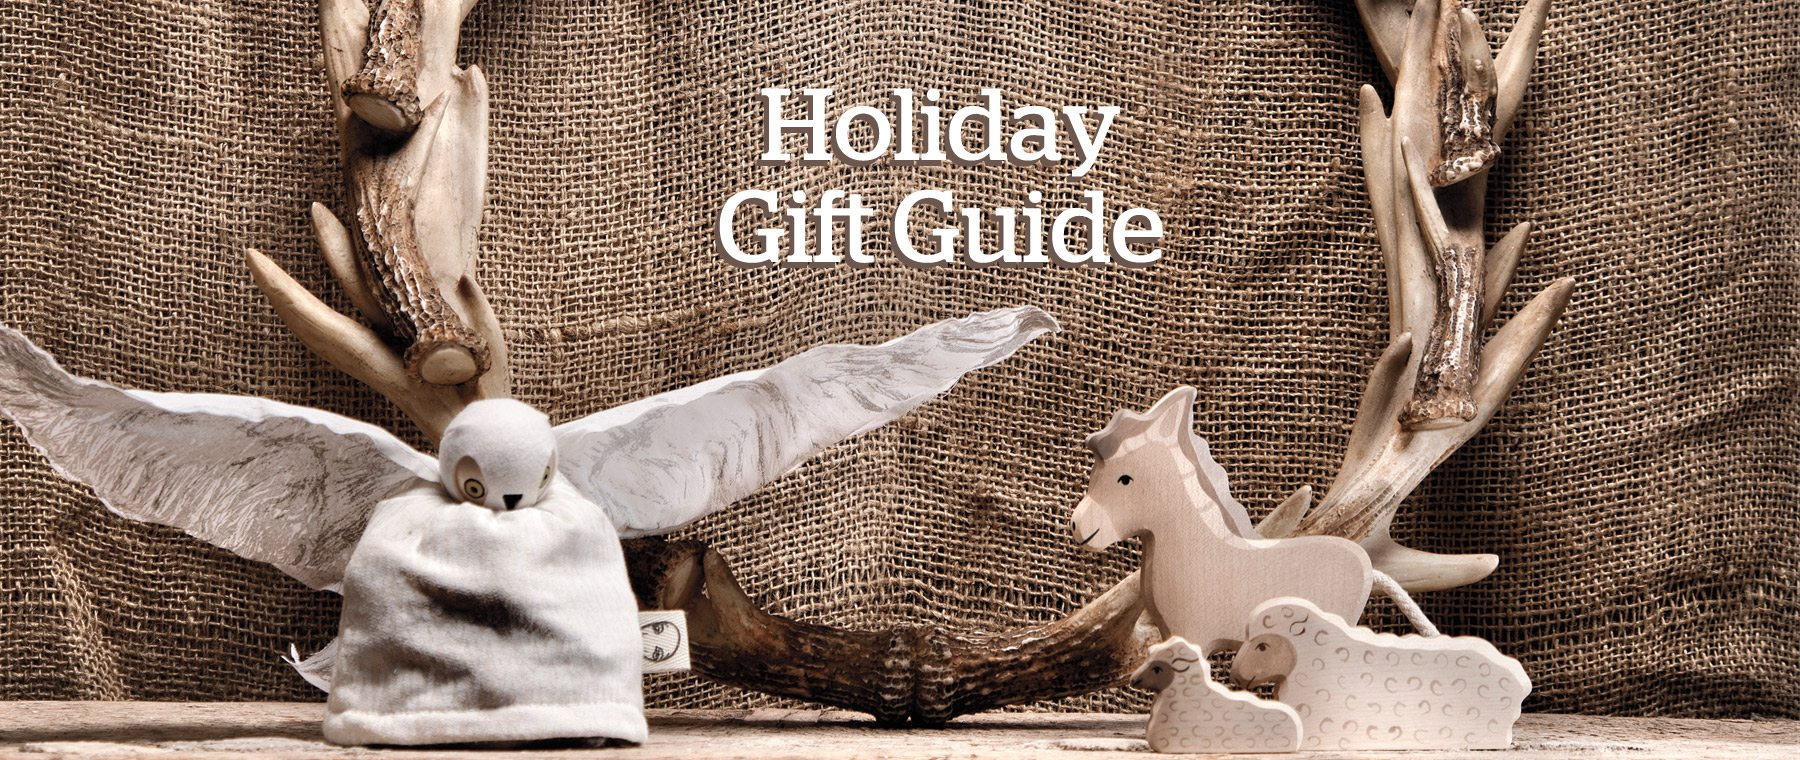 Unplug and reconnect with our gift guide — no batteries req'd!